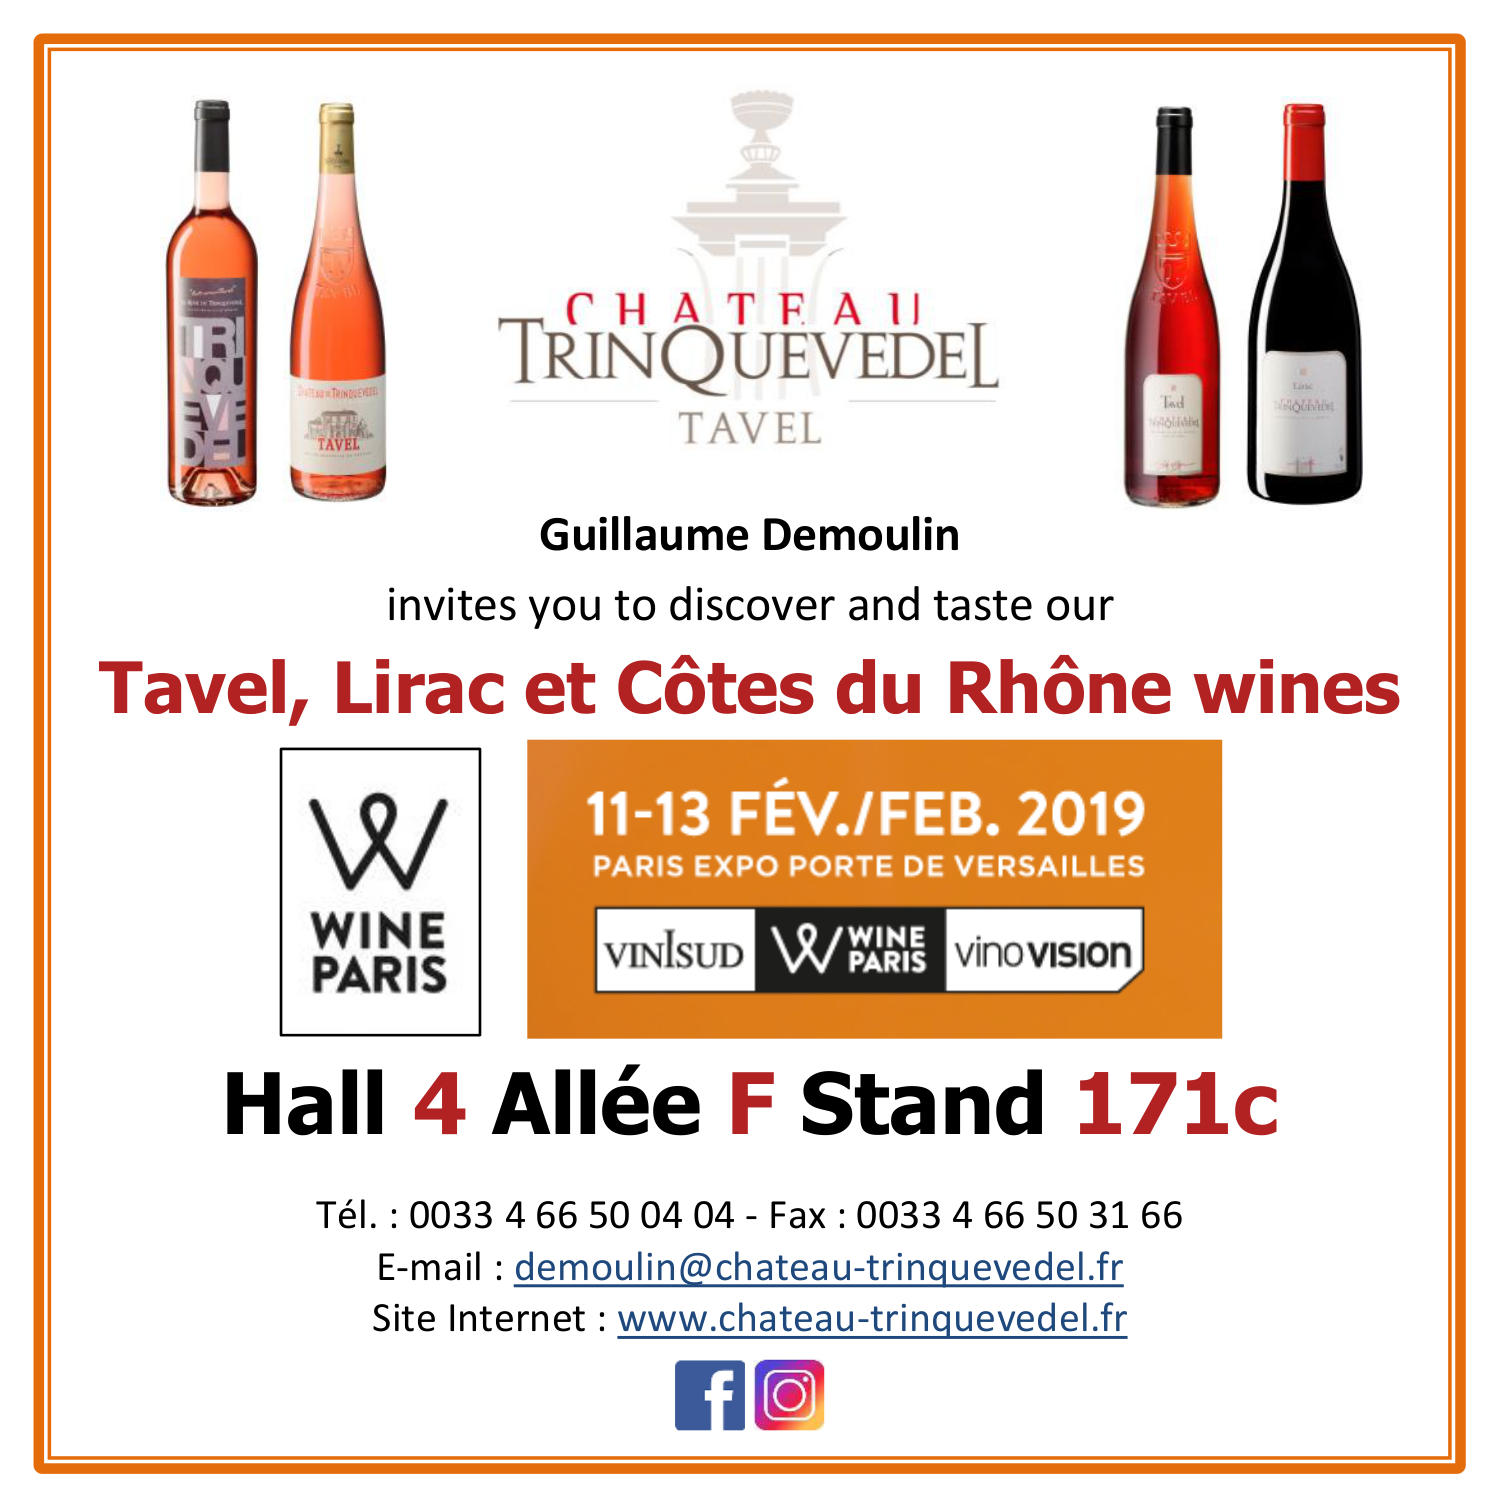 WINE PARIS, We'll be there : Hall 4 Allée F Stand 171c